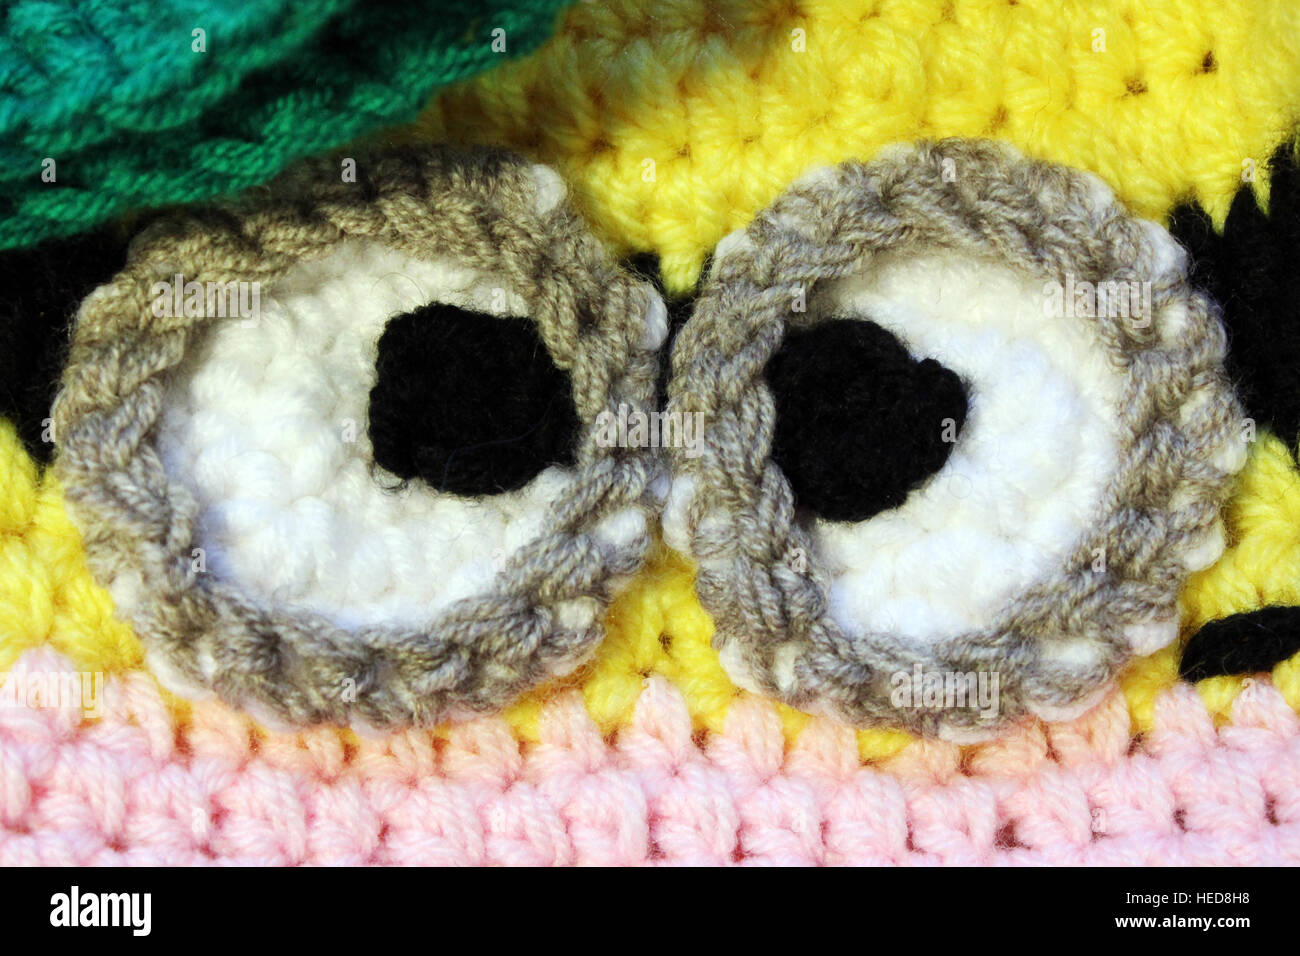 funny eyes associated on a baby hat. - Stock Image